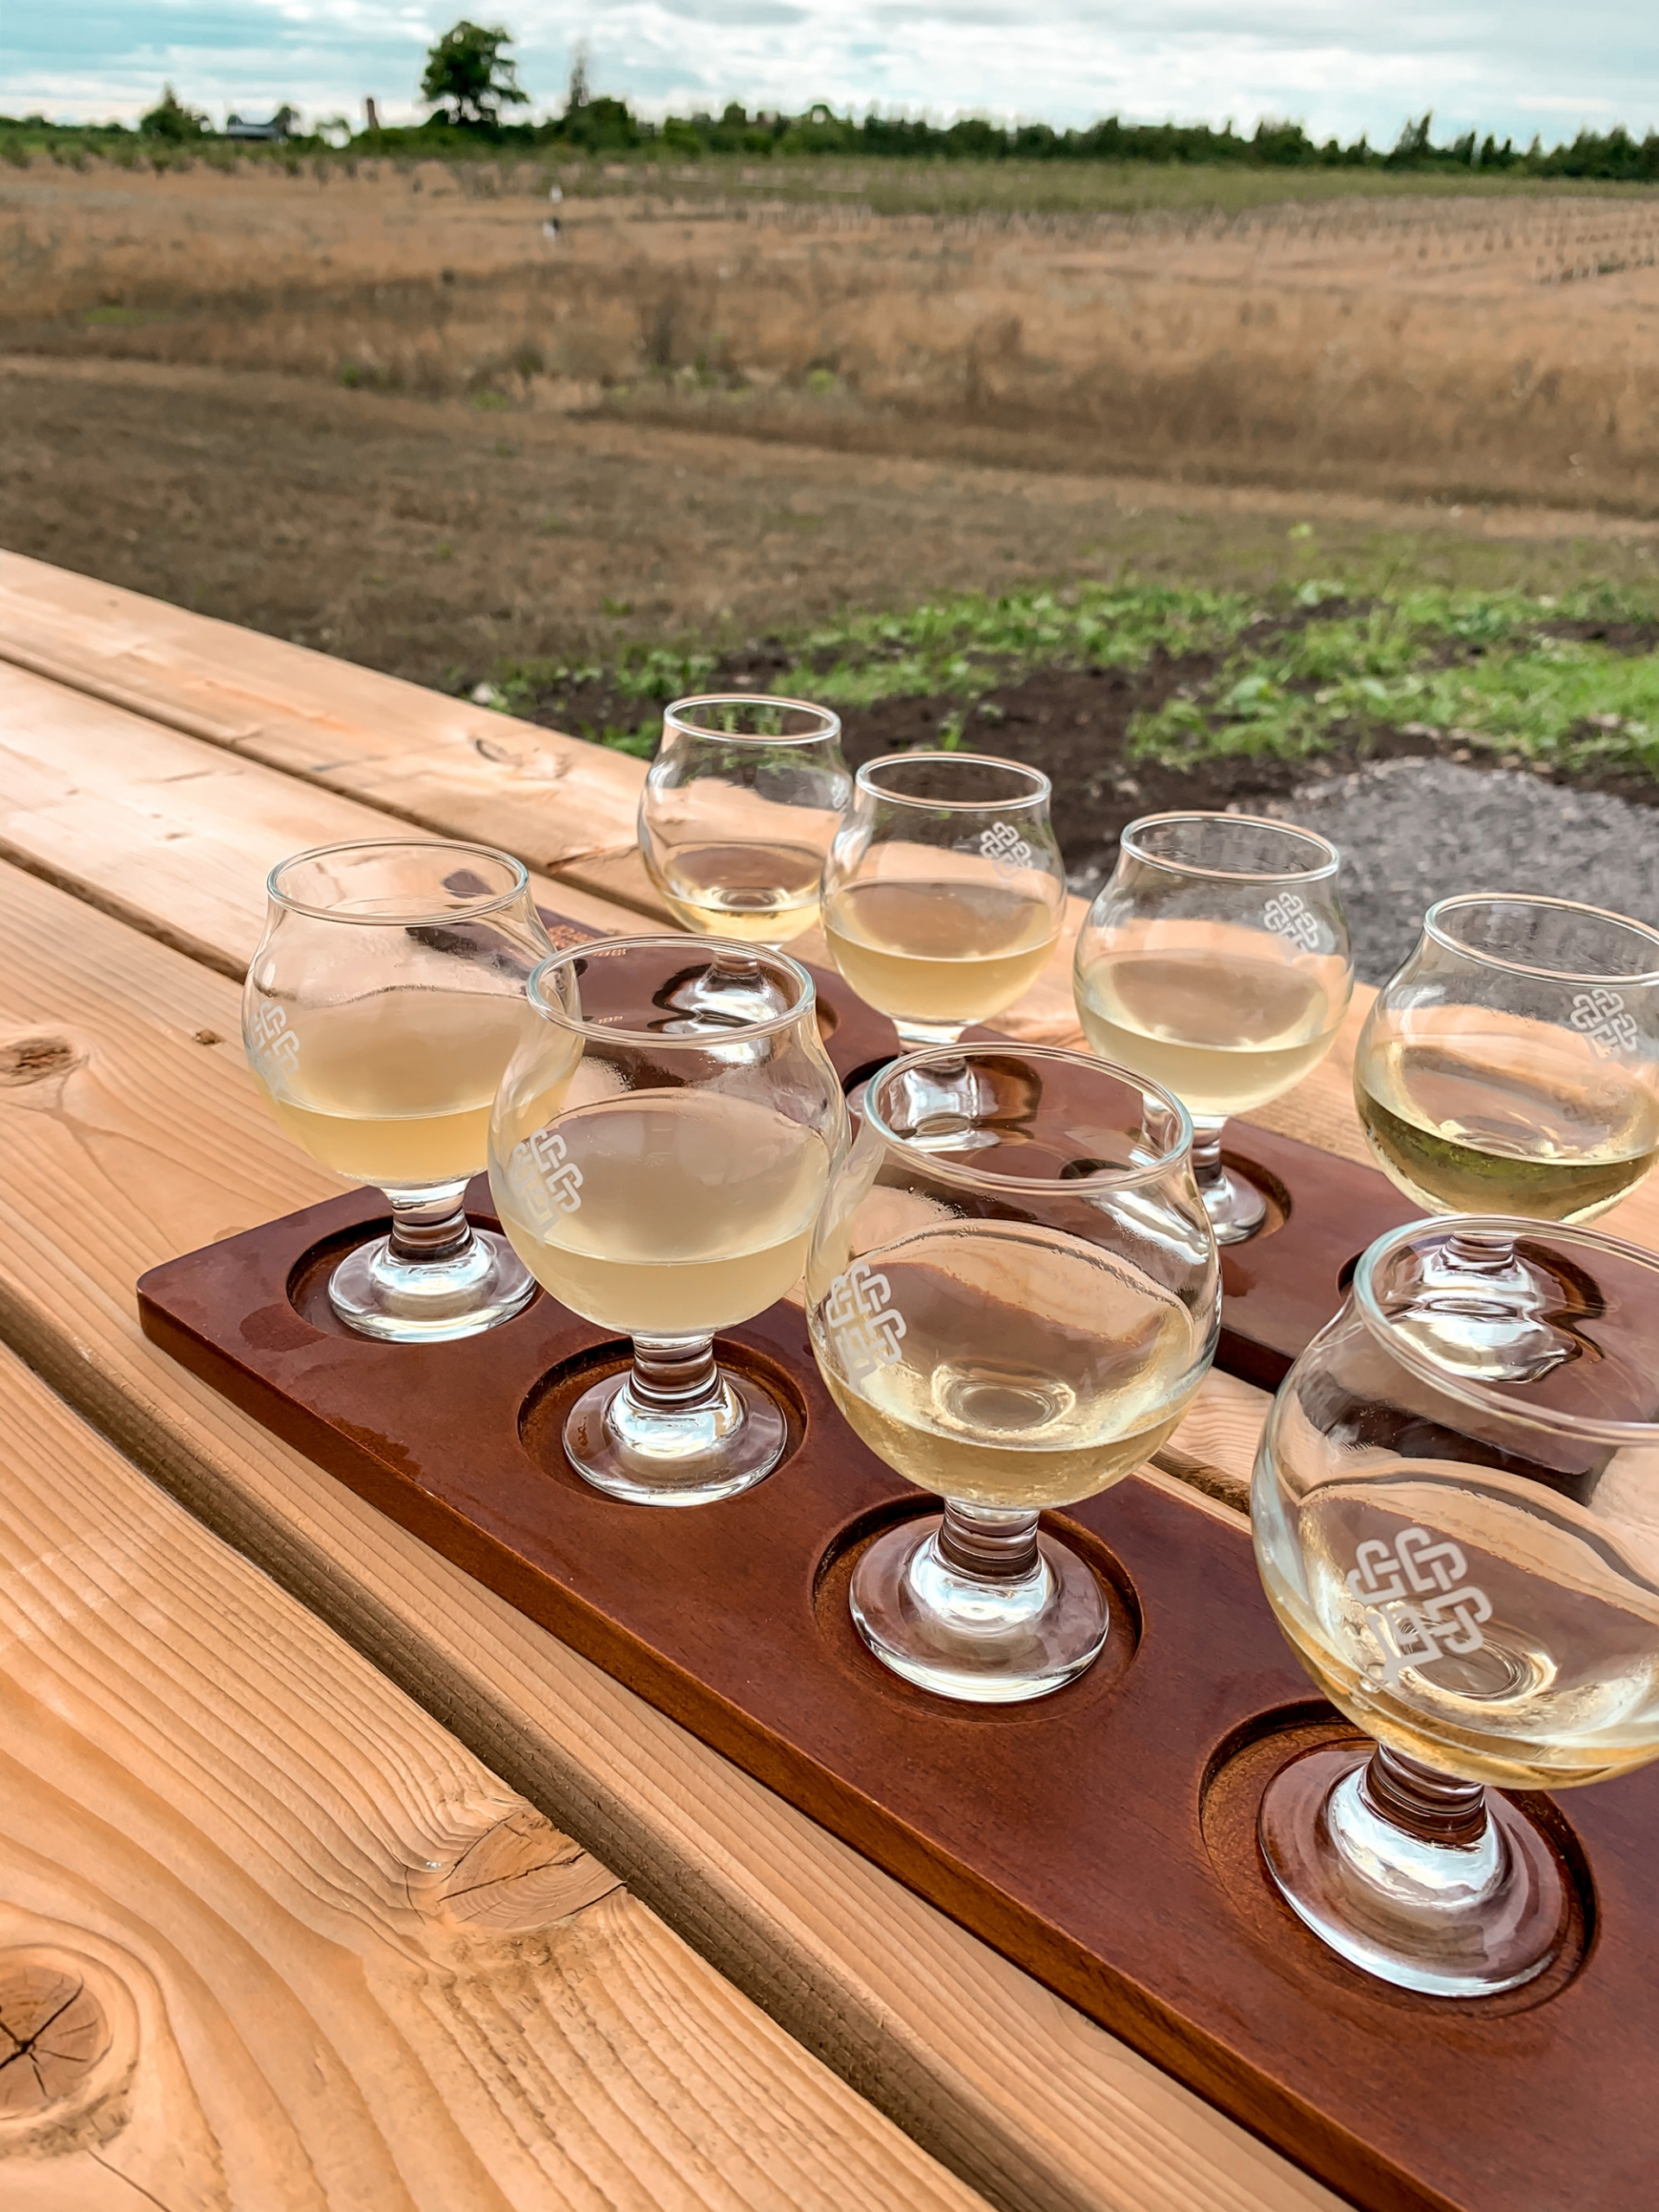 Prince Edward County wineries - Loch Mor Cider